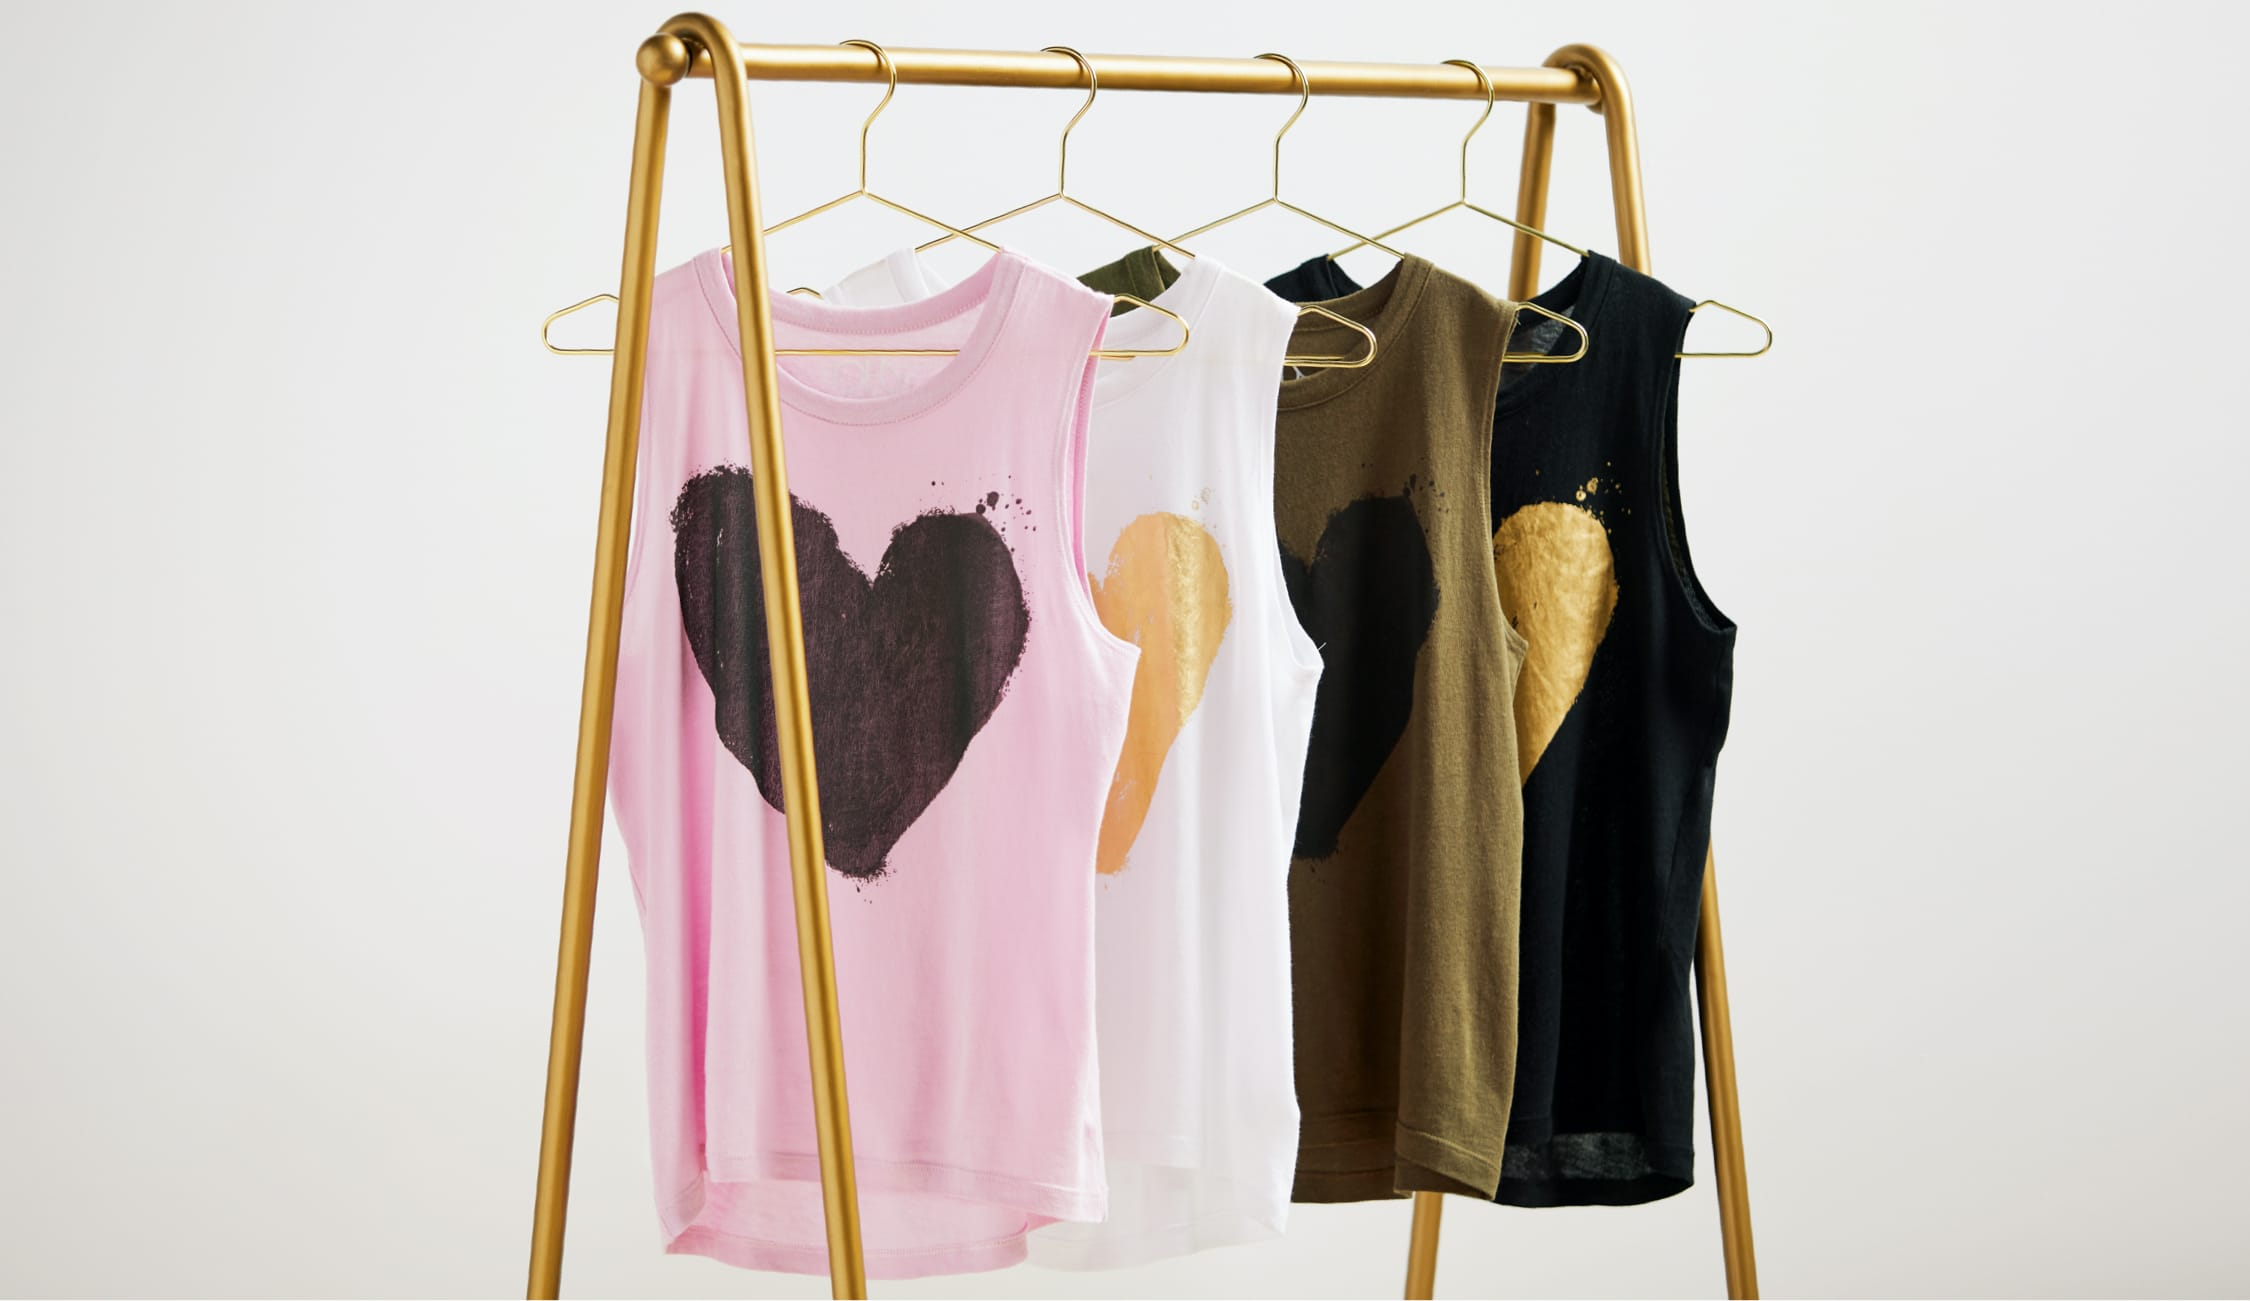 tank tops with heart graphic hanging from a rack